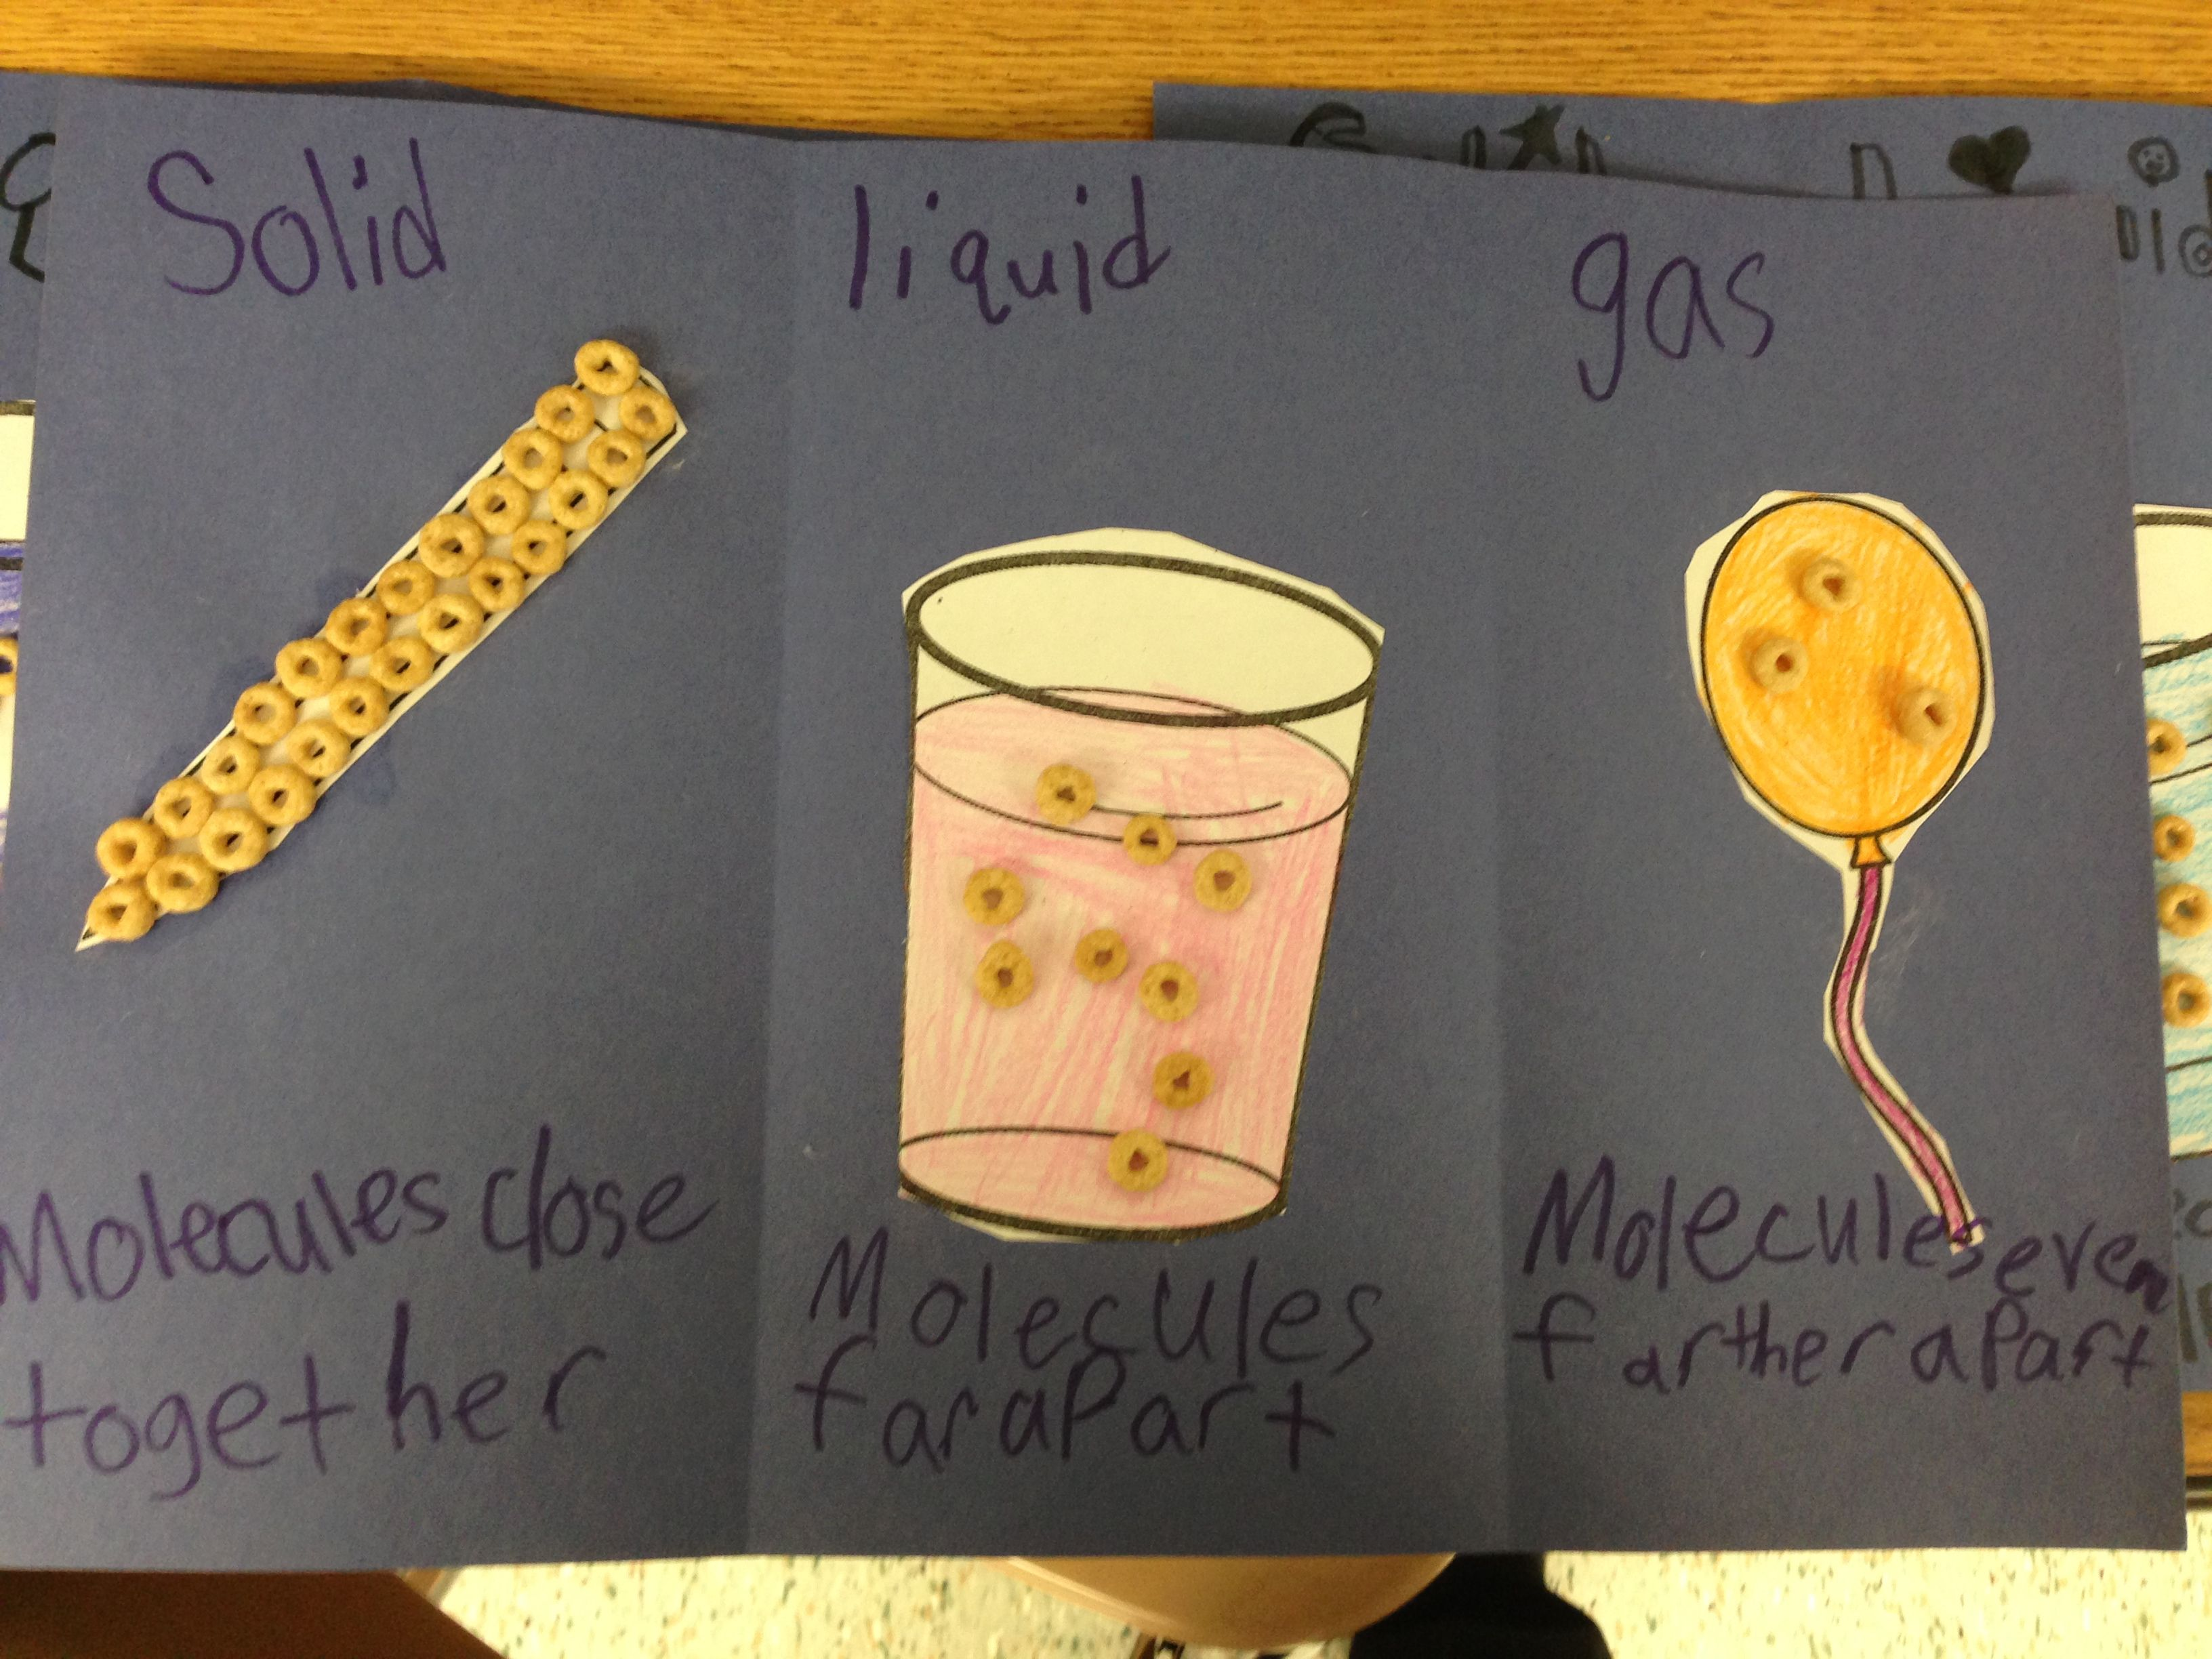 This Came Out So Cute Showing The Space Of Molecules In